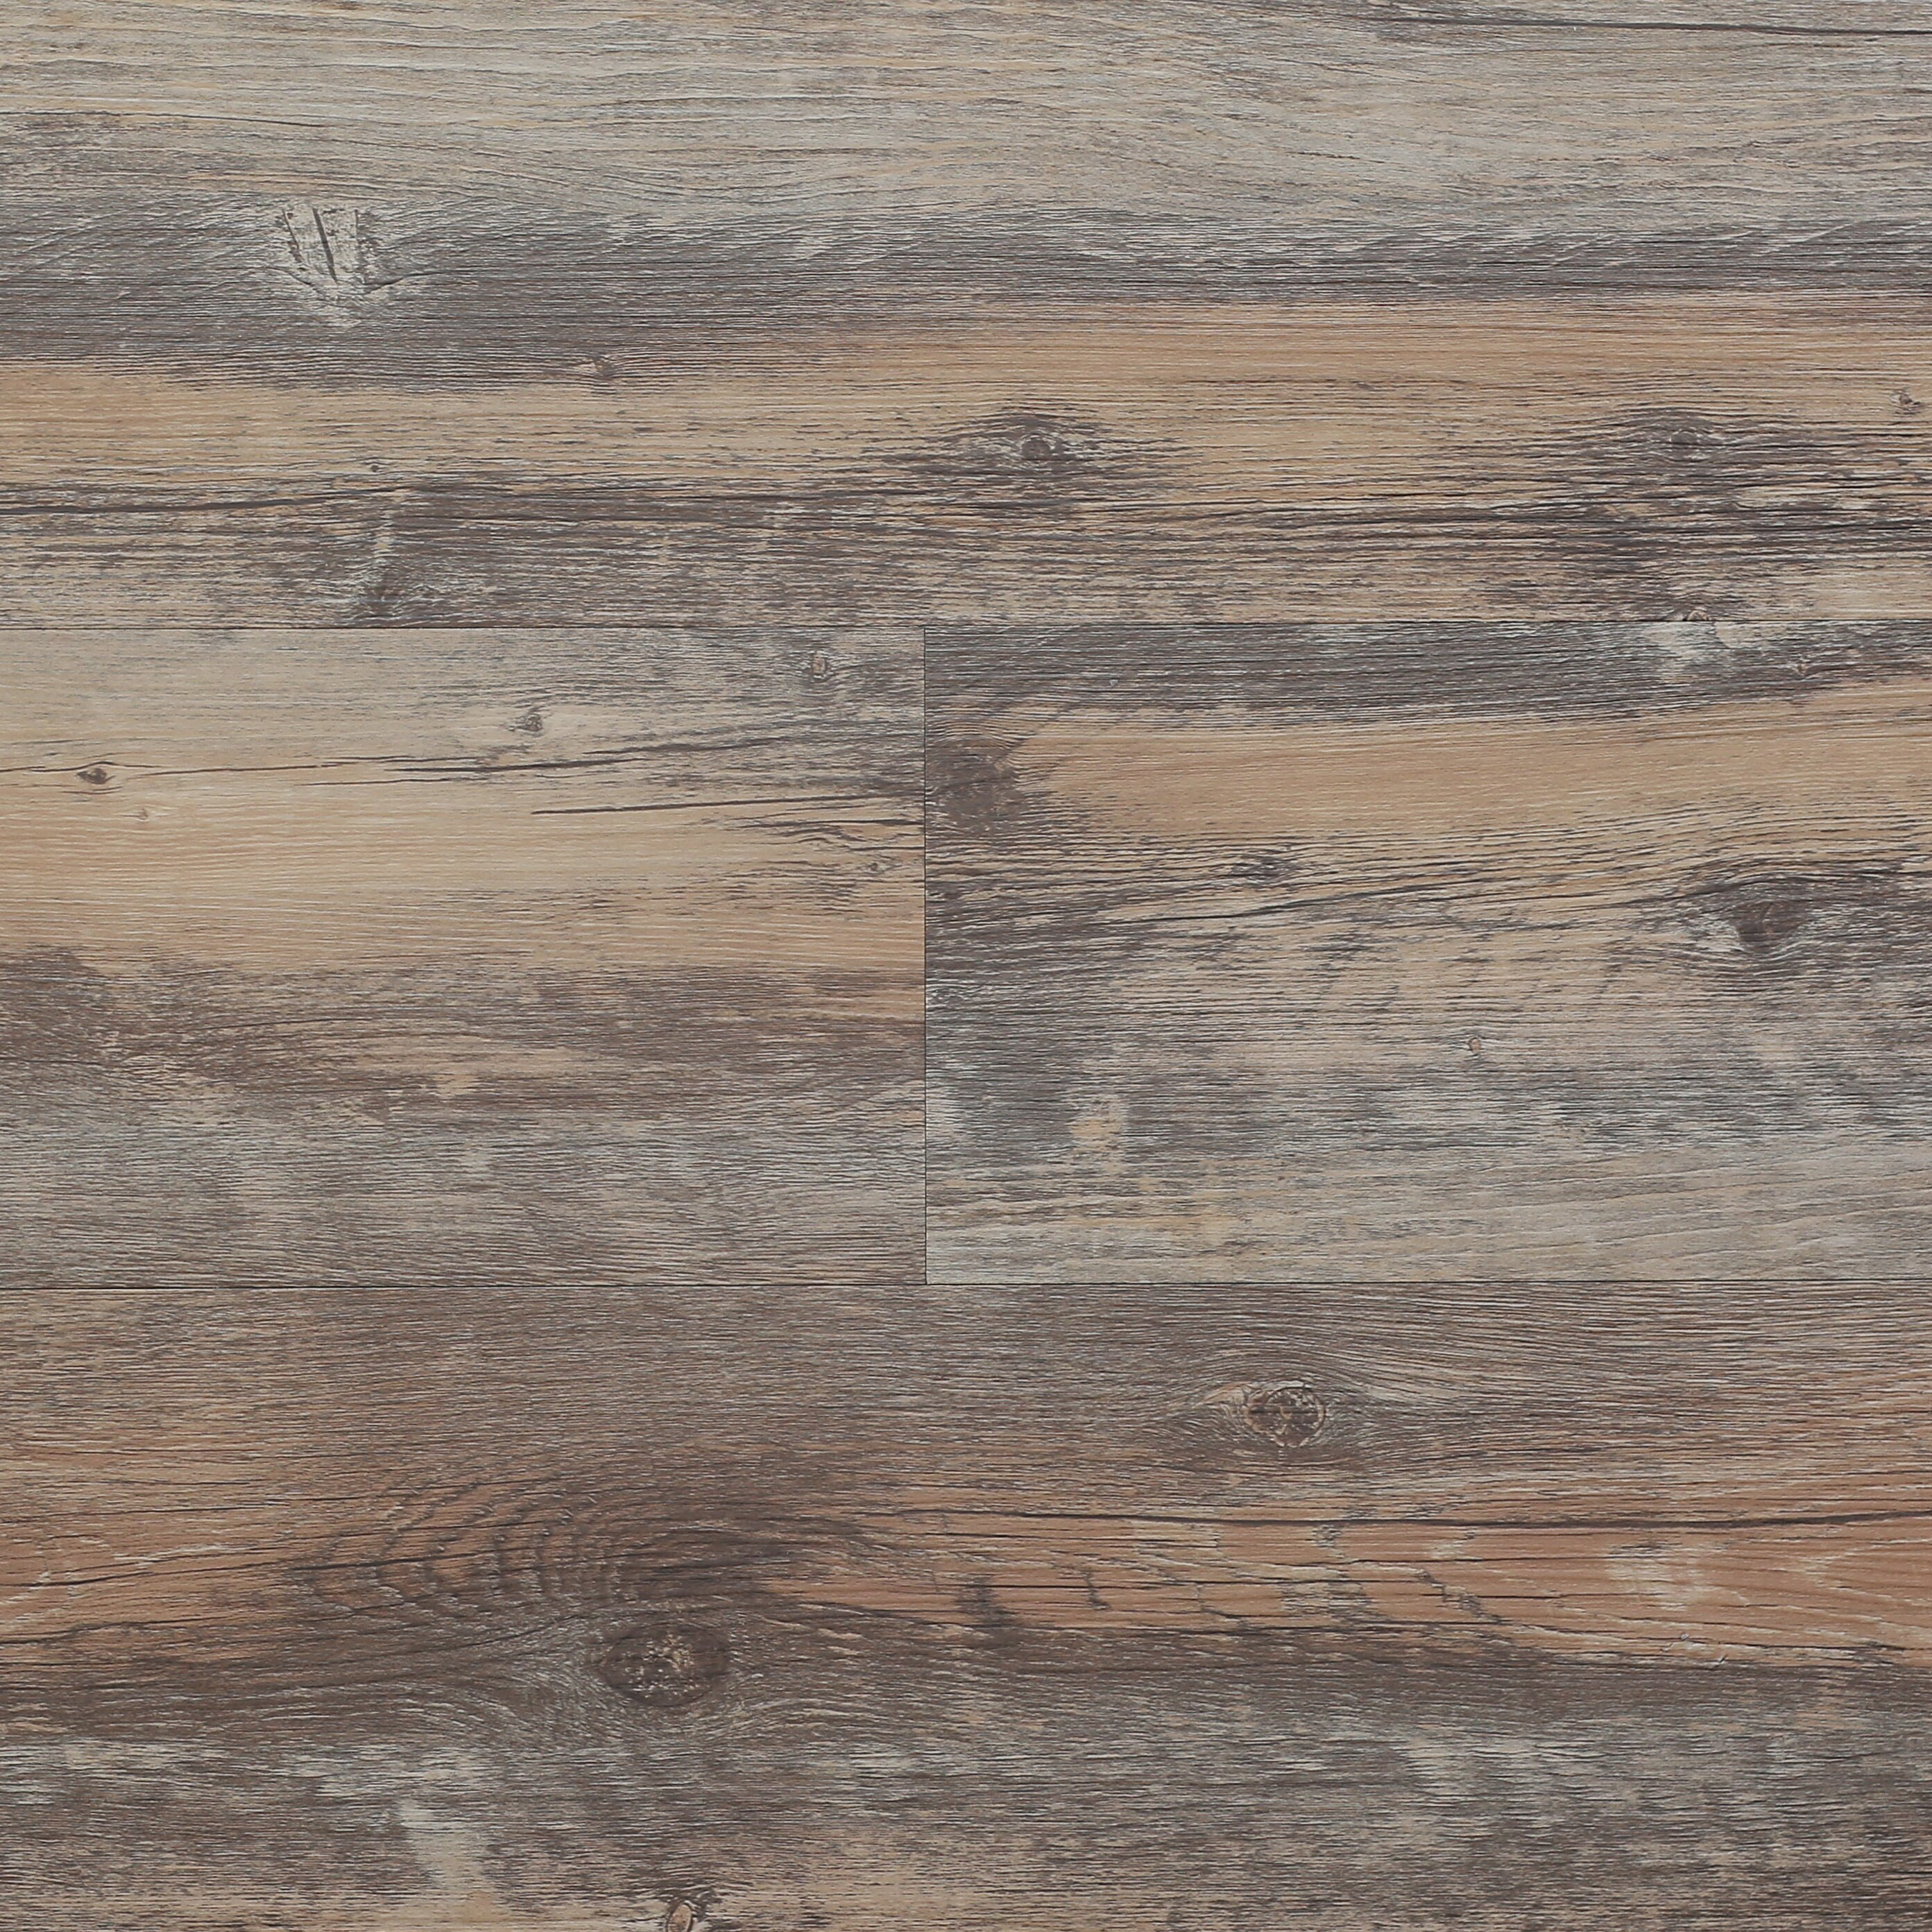 "Max Windsor Flooring Adaptafloor 6"" x 48"" x 2mm Luxury Vinyl Plank in Windsor ..."